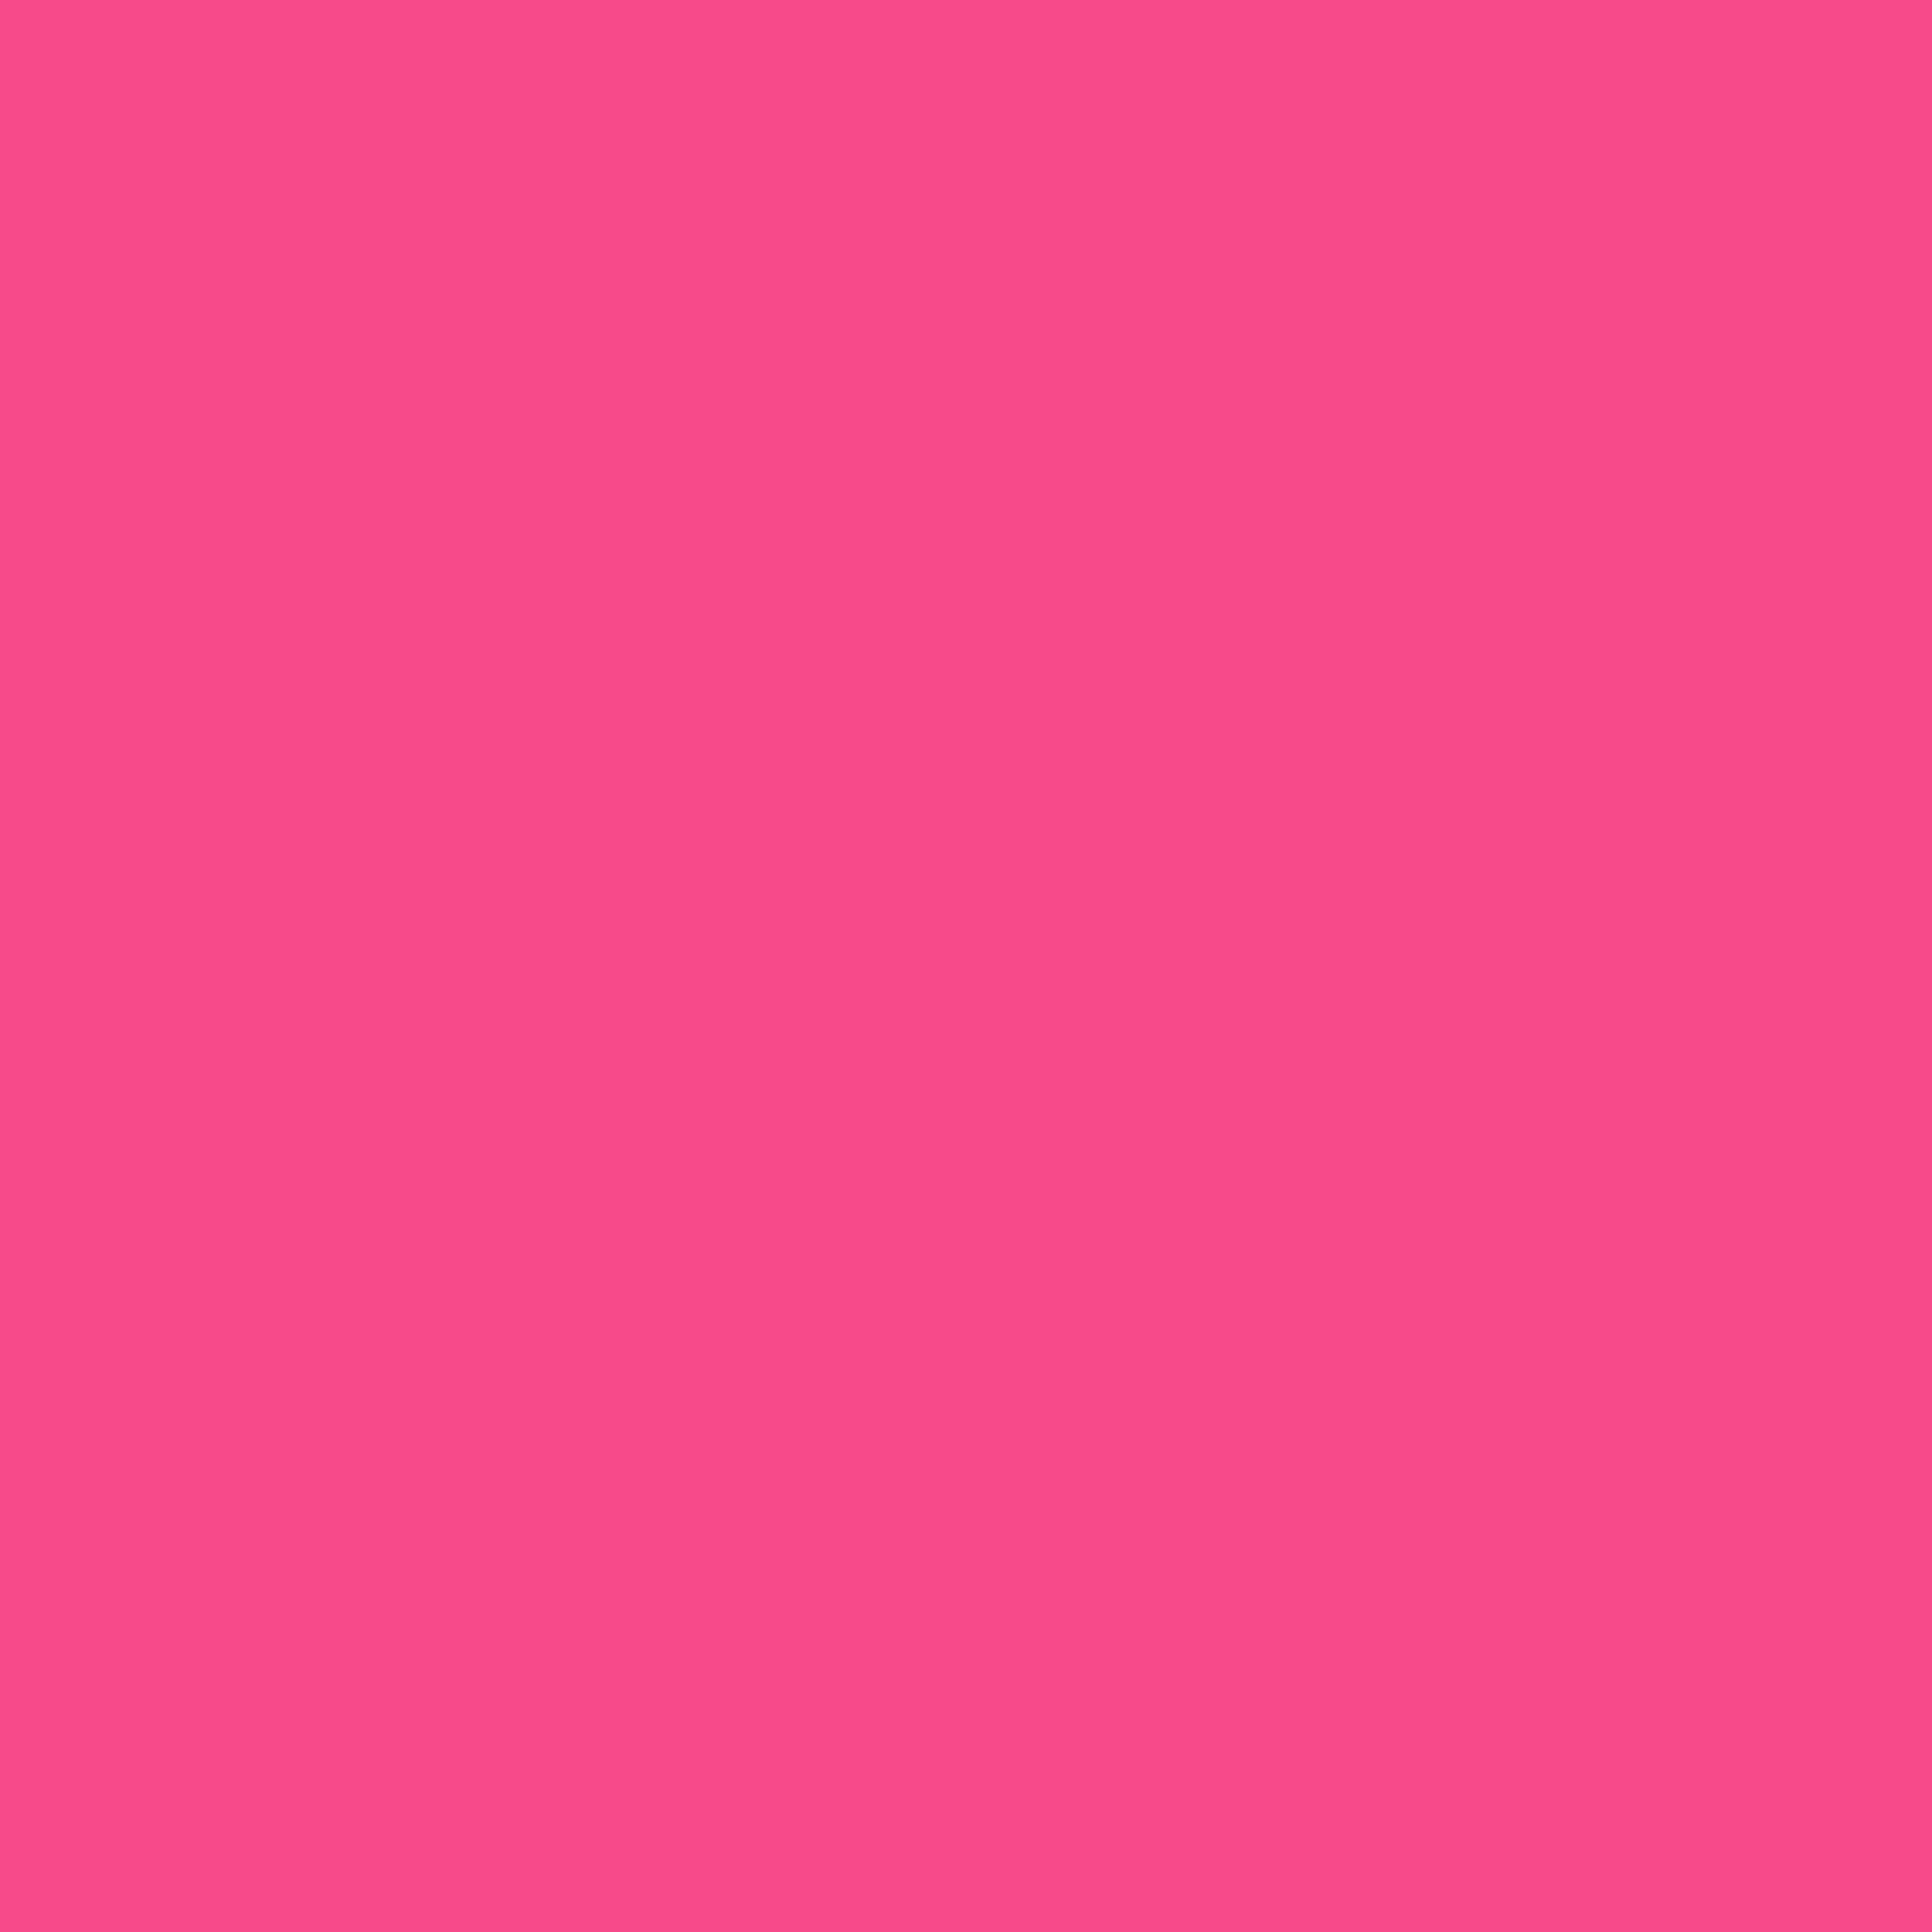 3600x3600 French Rose Solid Color Background